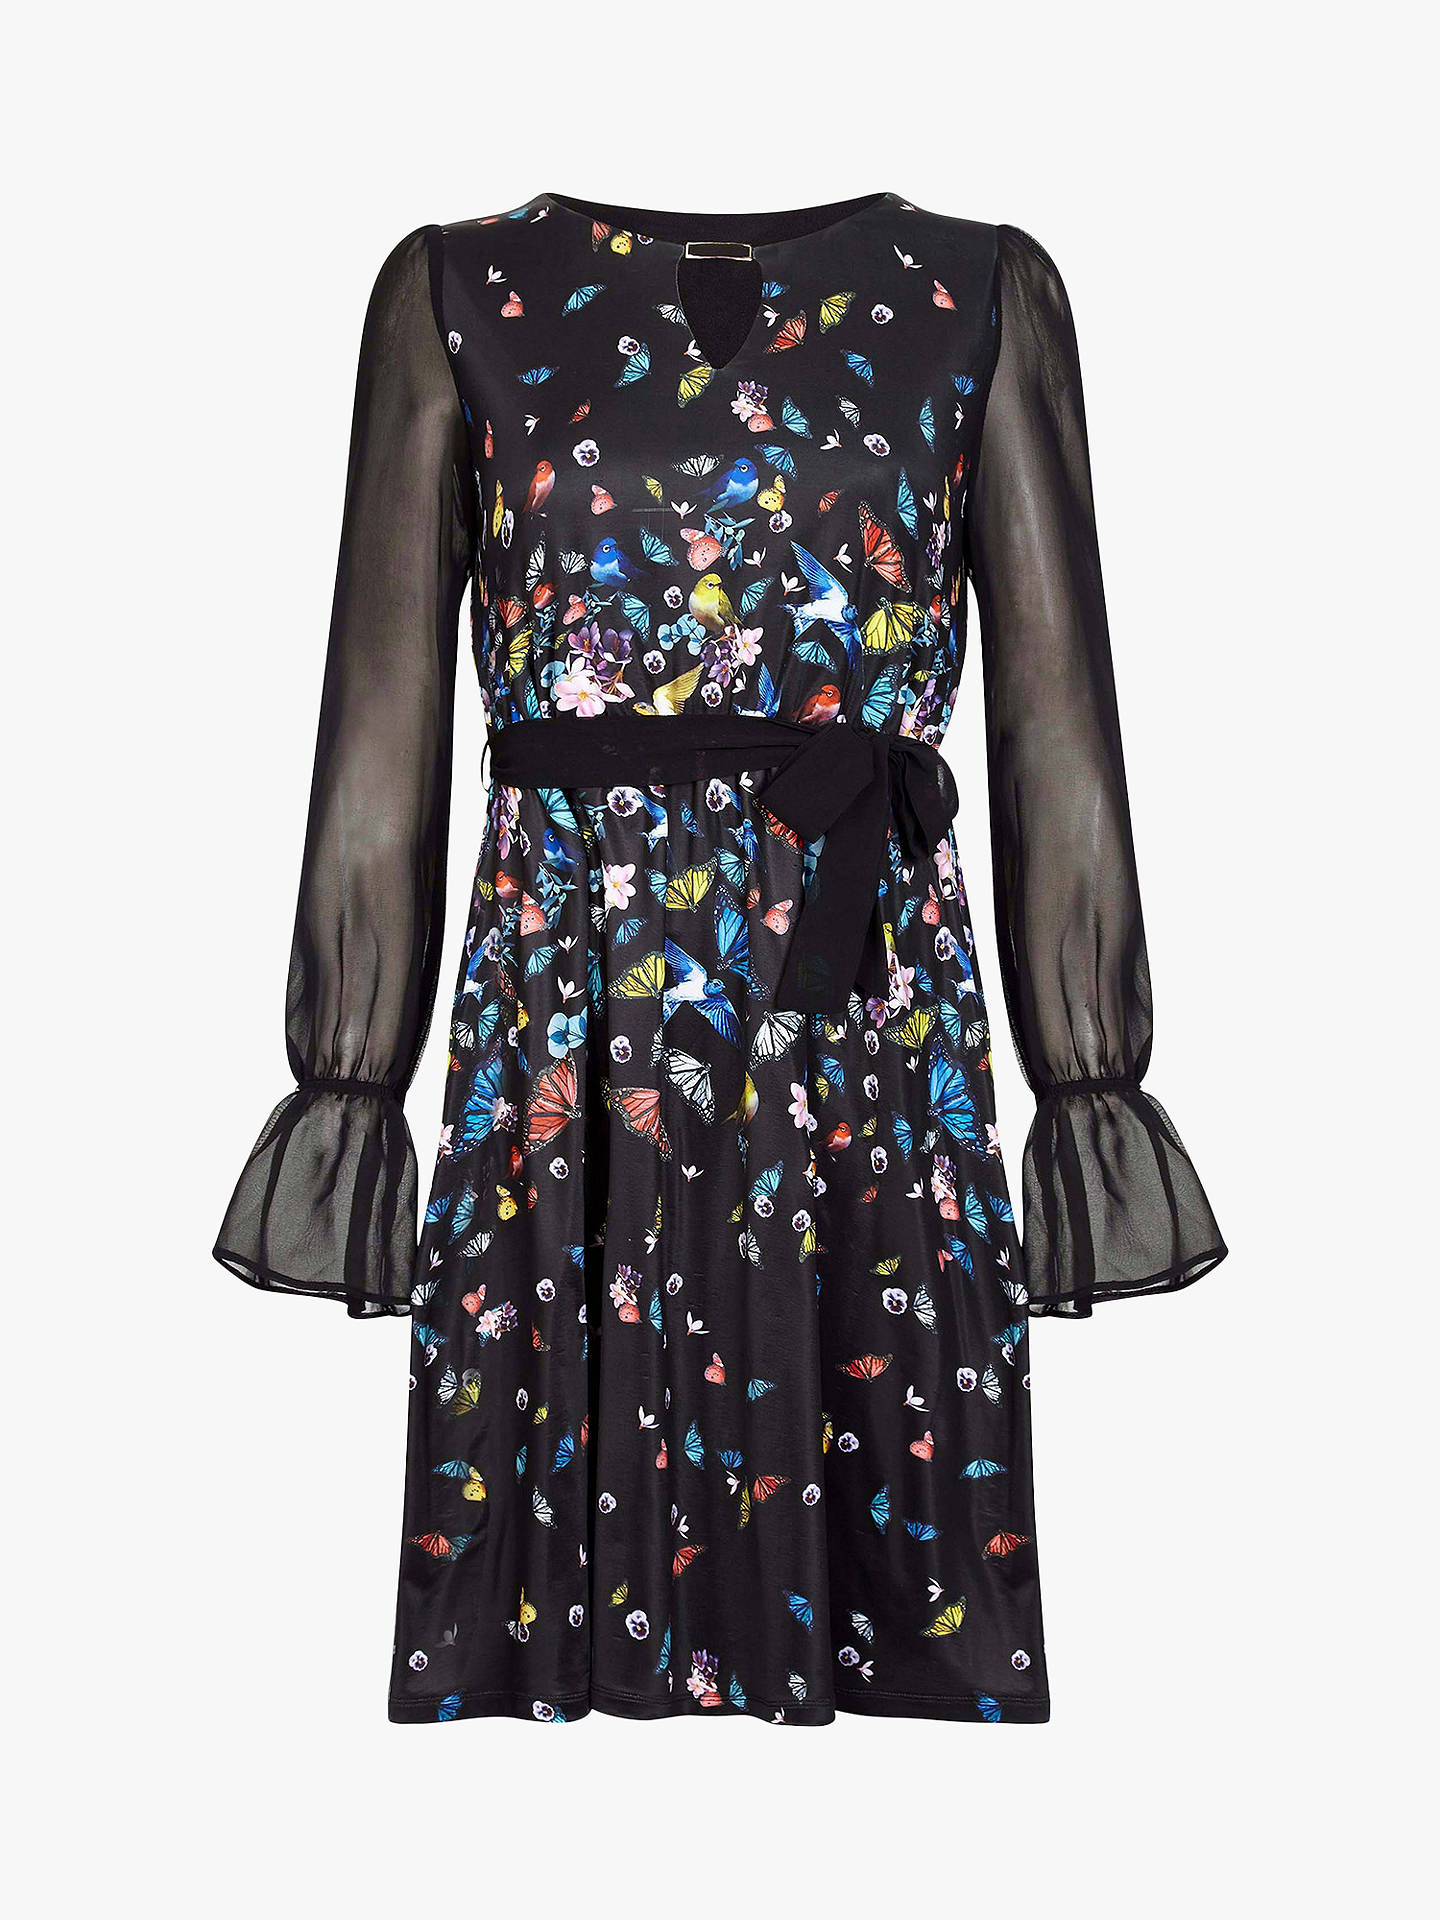 BuyYumi Sheer Sleeve Dress, Black, 8 Online at johnlewis.com